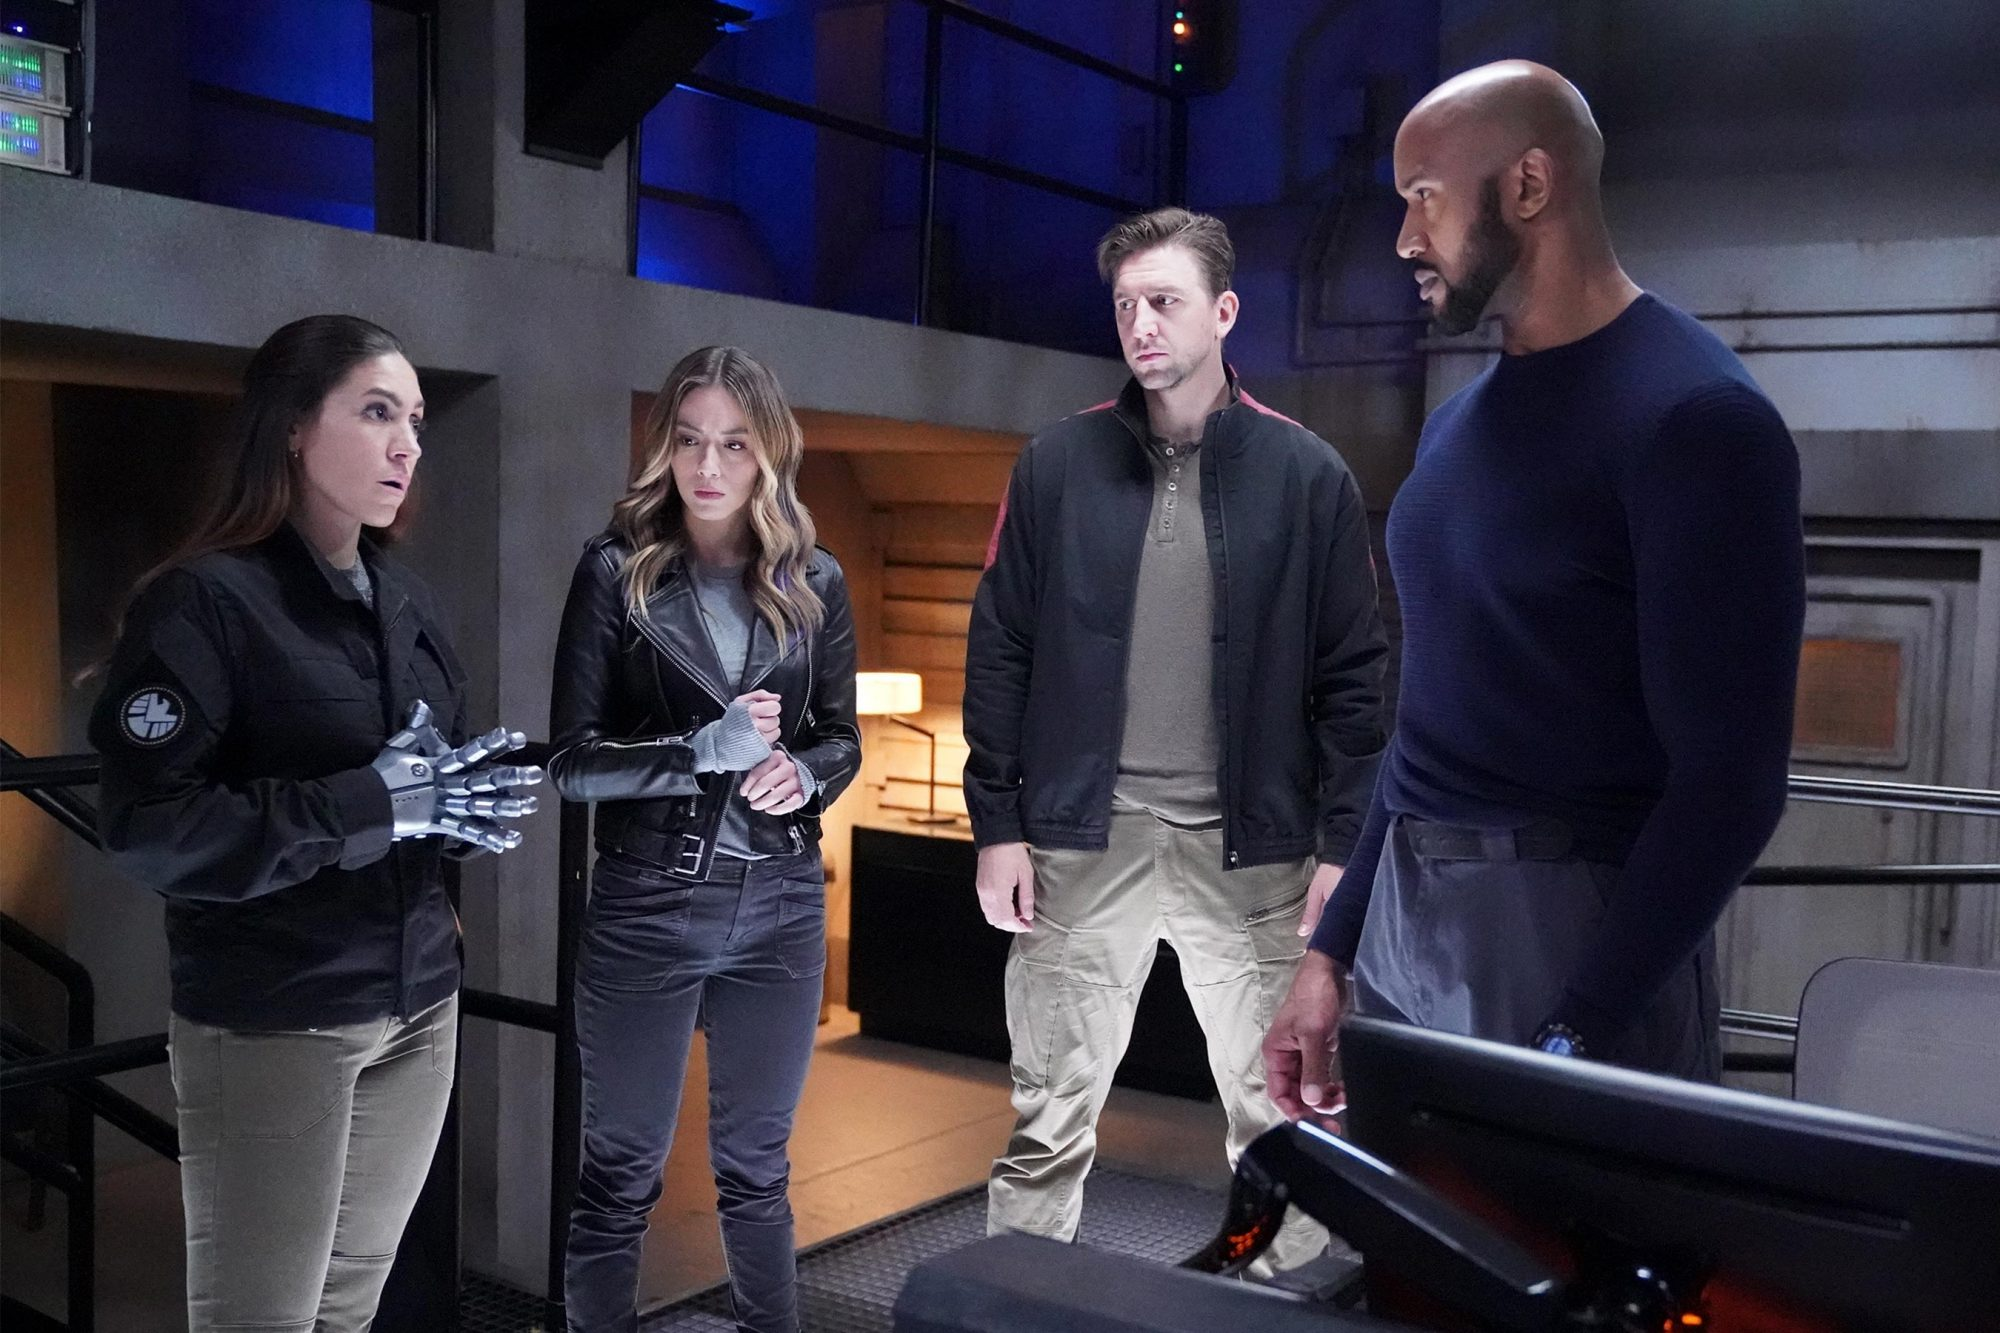 "MARVEL'S AGENTS OF S.H.I.E.L.D. - ""Leap"" - The party's over, and now the team must trust each other in order to face impending doom and an enemy that's closer than they think, on ""Marvel's Agents of S.H.I.E.L.D.,"" airing FRIDAY, JULY 19 (8:00-9:00 p.m. EDT), on ABC. (ABC/Mitch Haaseth) NATALIA CORDOVA-BUCKLEY, CHLOE BENNET, MAX OSINSKI, HENRY SIMMONS"